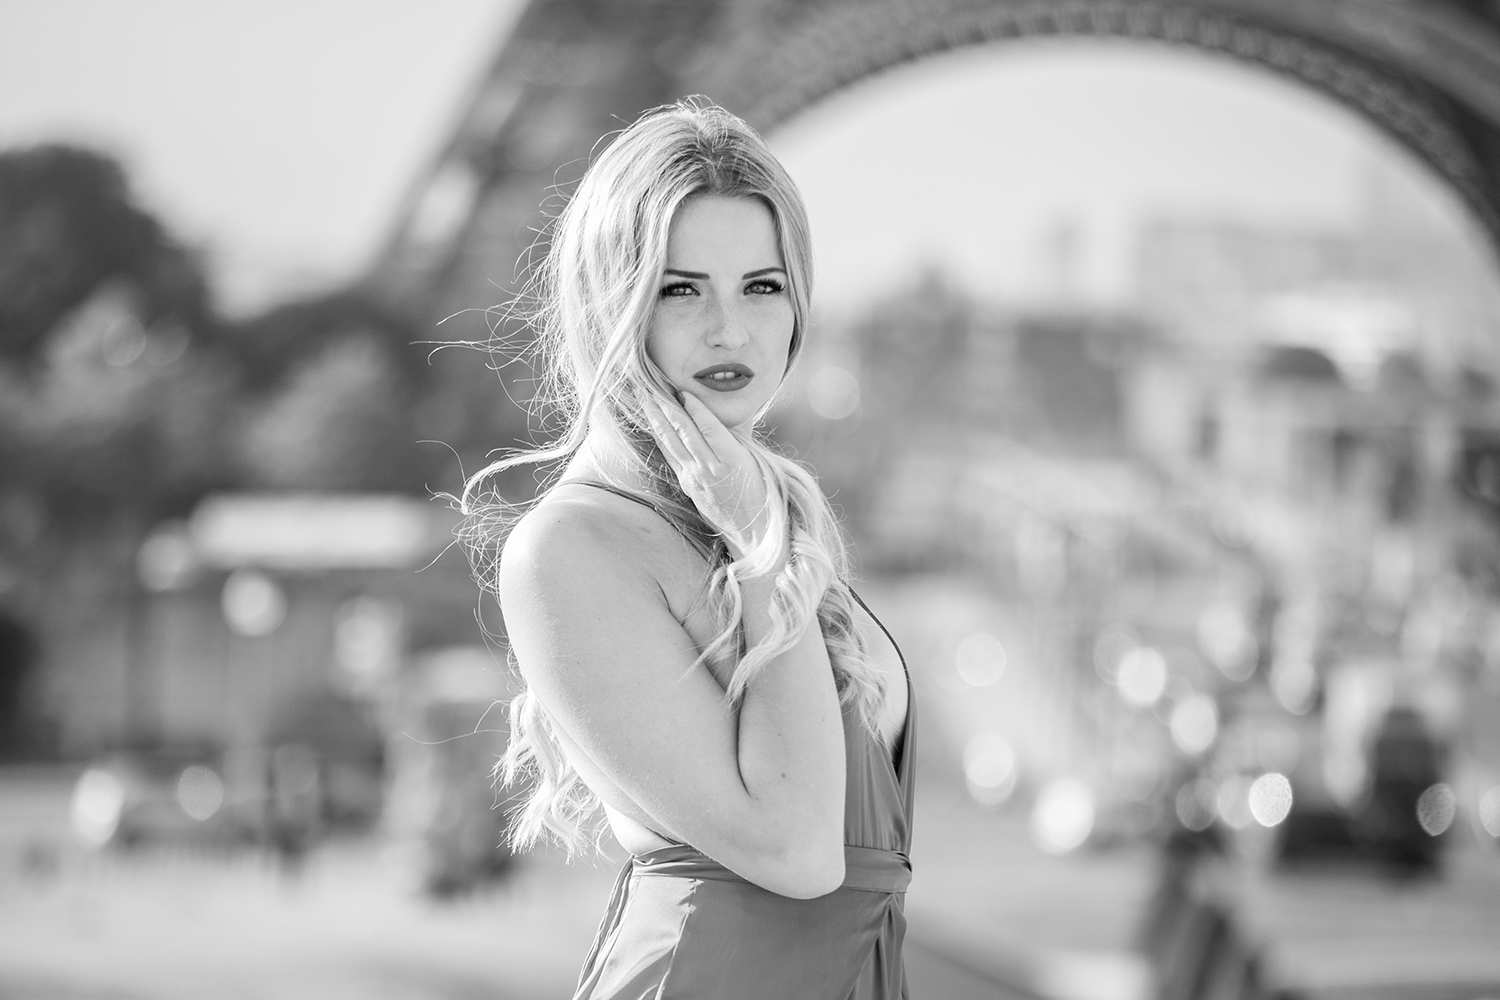 paris fotoshooting portrait